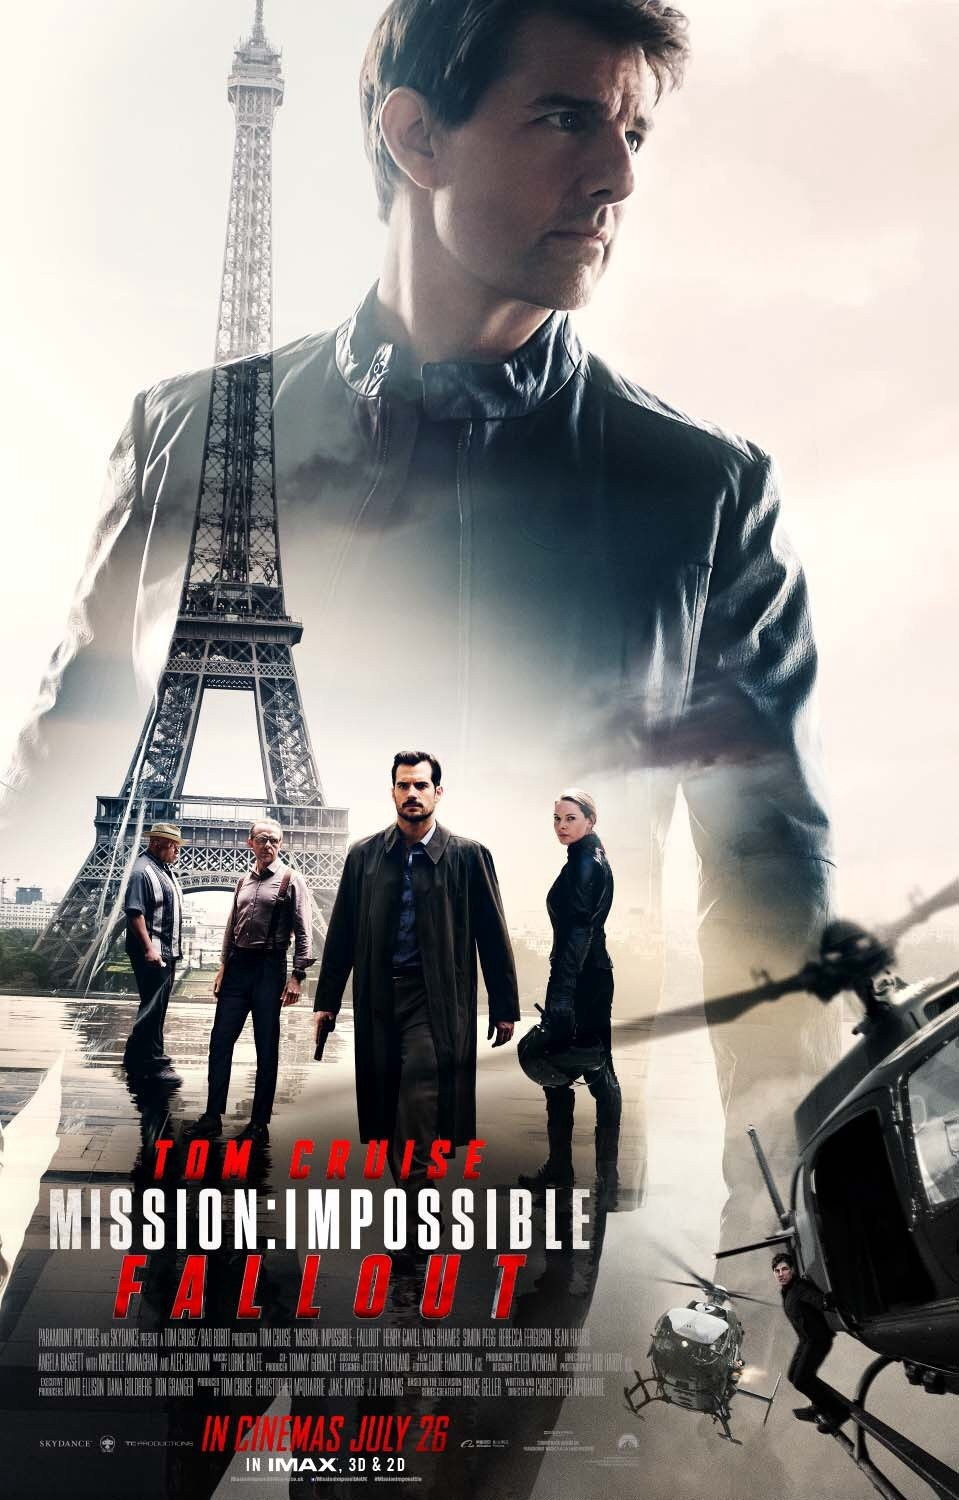 watch mission impossible fallout free online 123